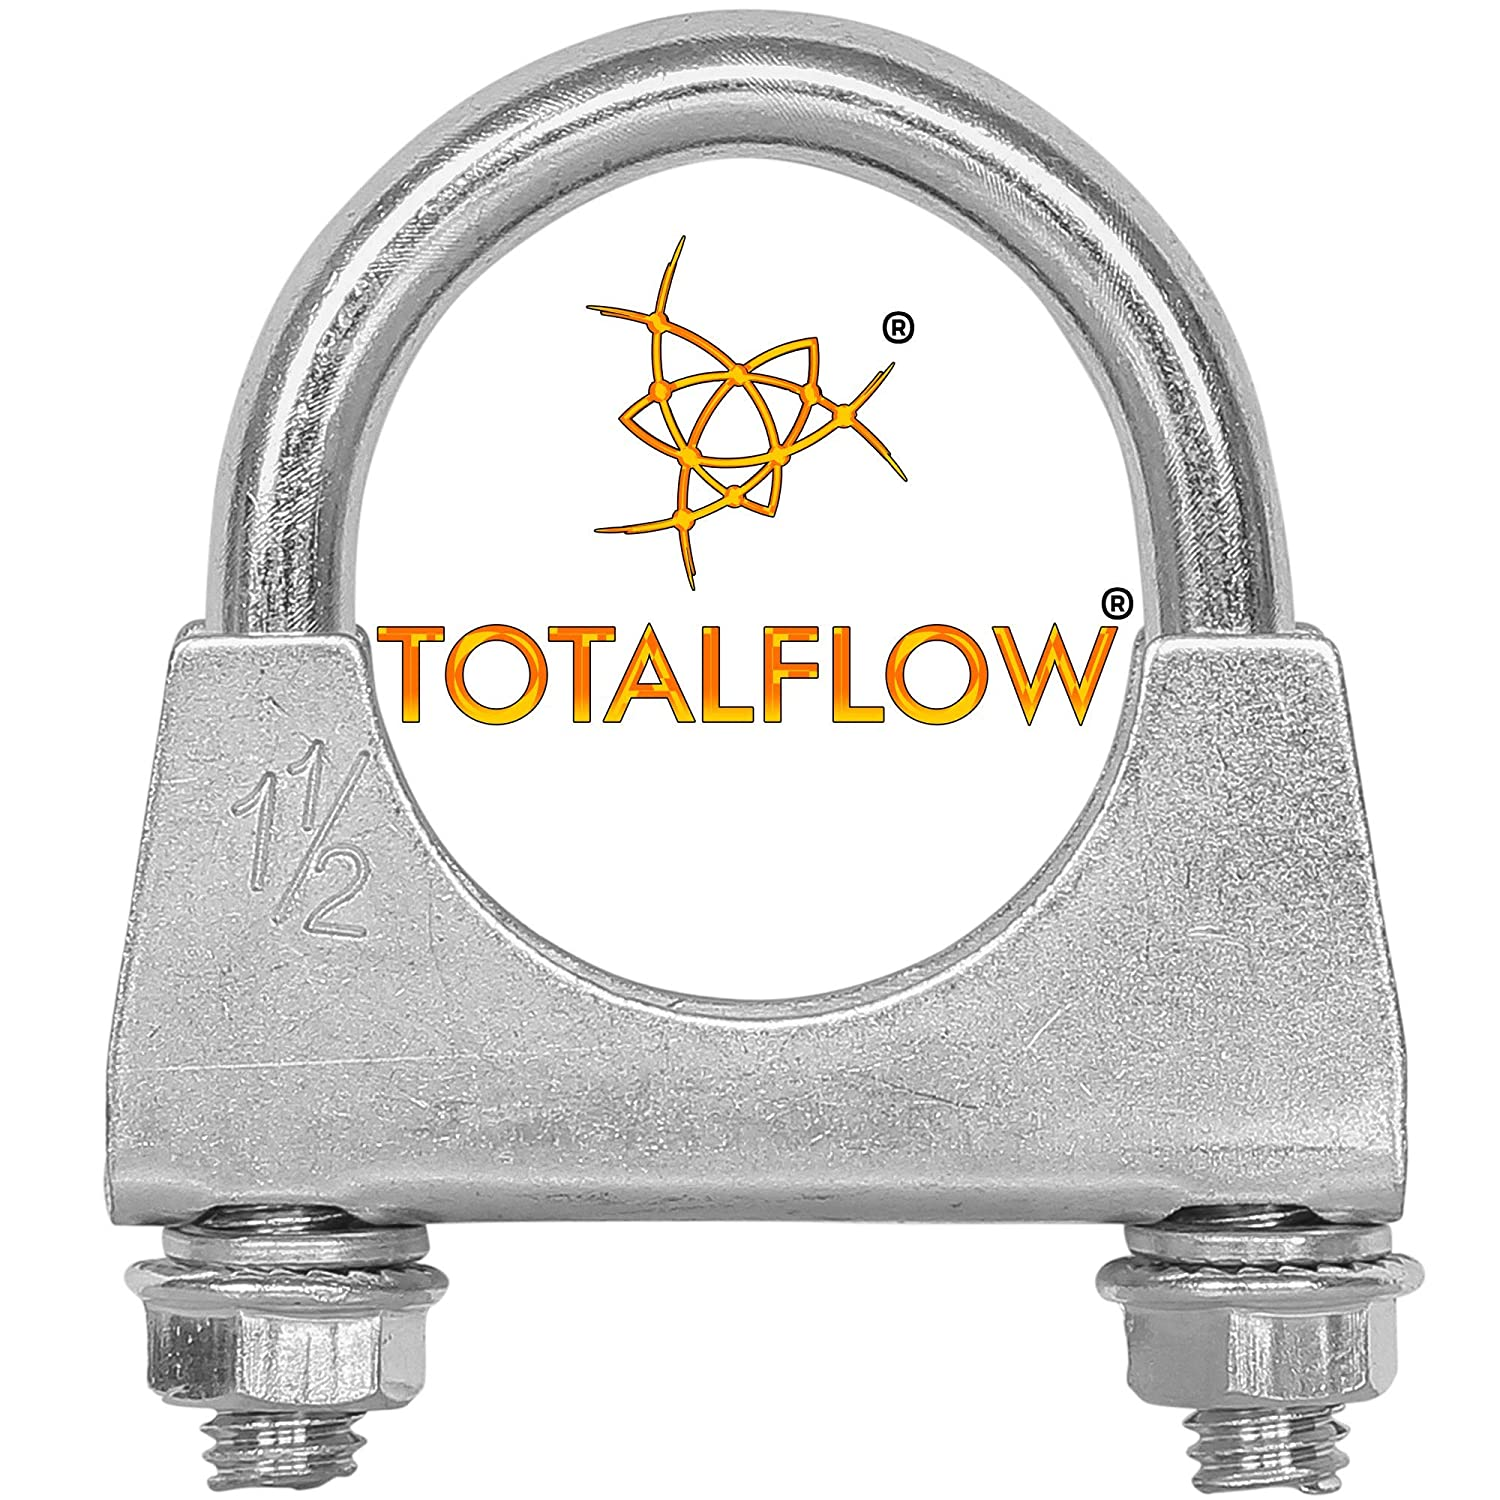 TOTALFLOW Natural Finish 2.25 TF-U225 304 Stainless Steel Saddle U-Bolt Exhaust Muffler Clamp-2.25 Inch